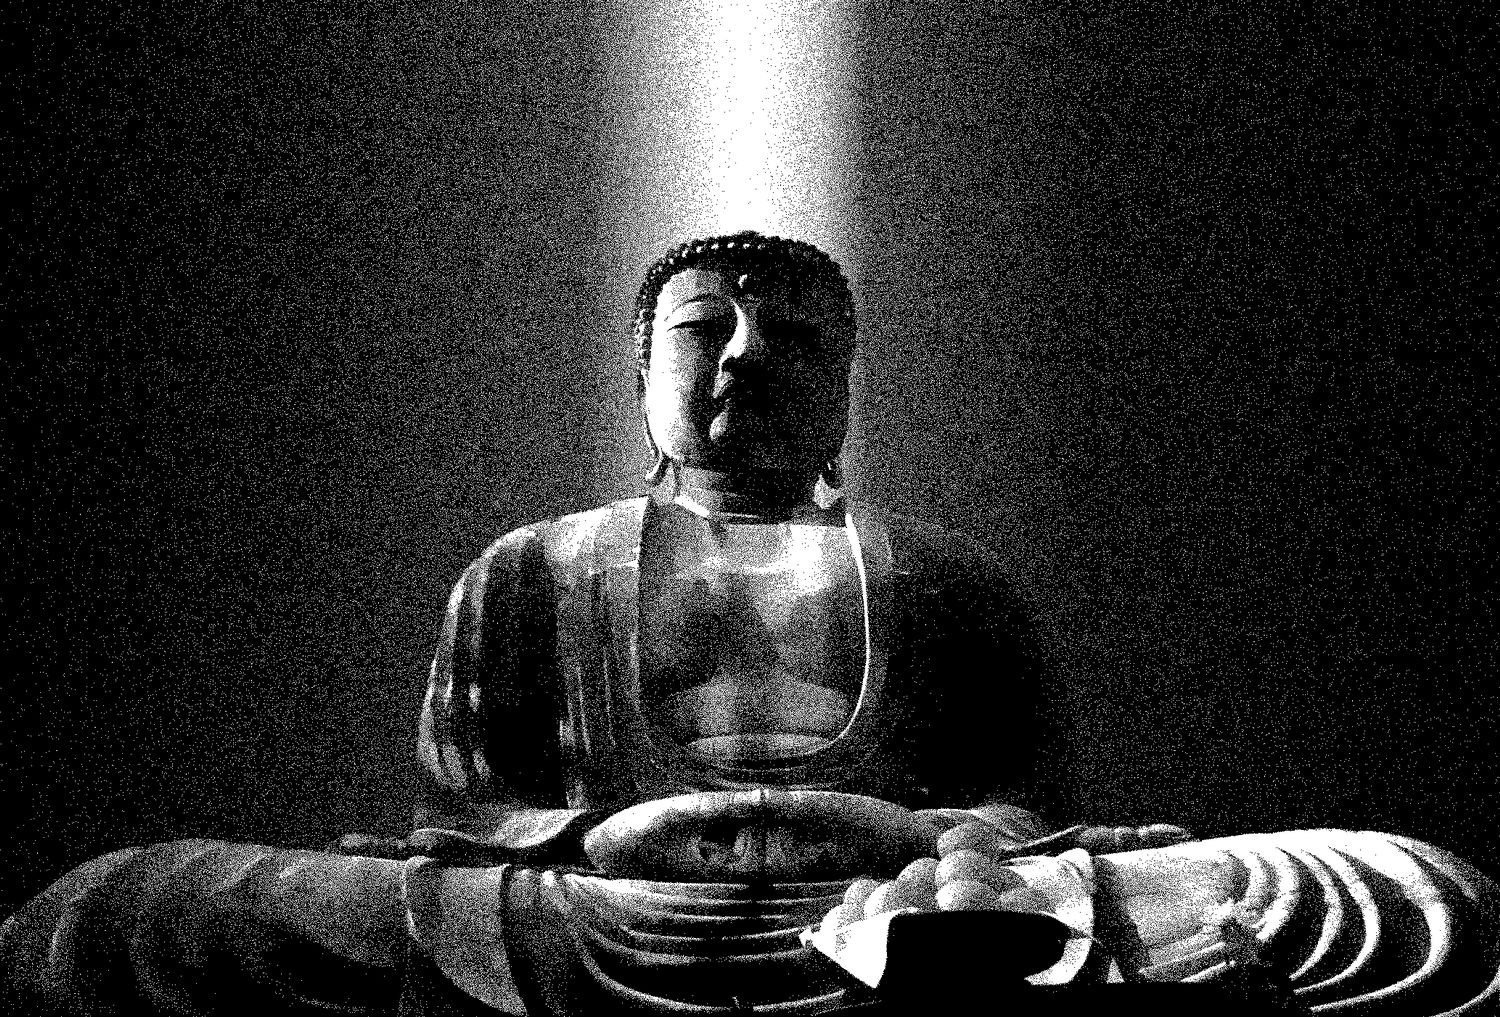 The Daibutsu Buddha at Kamakura #7 - Here it is, reduced to a halftone -- just black and white dots. - The Daibutsu Buddha at Kamakura - shot in Kodachrome with a canon SLR with a 19mm lens - Tony Karp, design, art, photography, techno-impressionist, techno-impressionism, aerial photography , drone , drones , dji , mavic pro , video , 3D printing - Books -